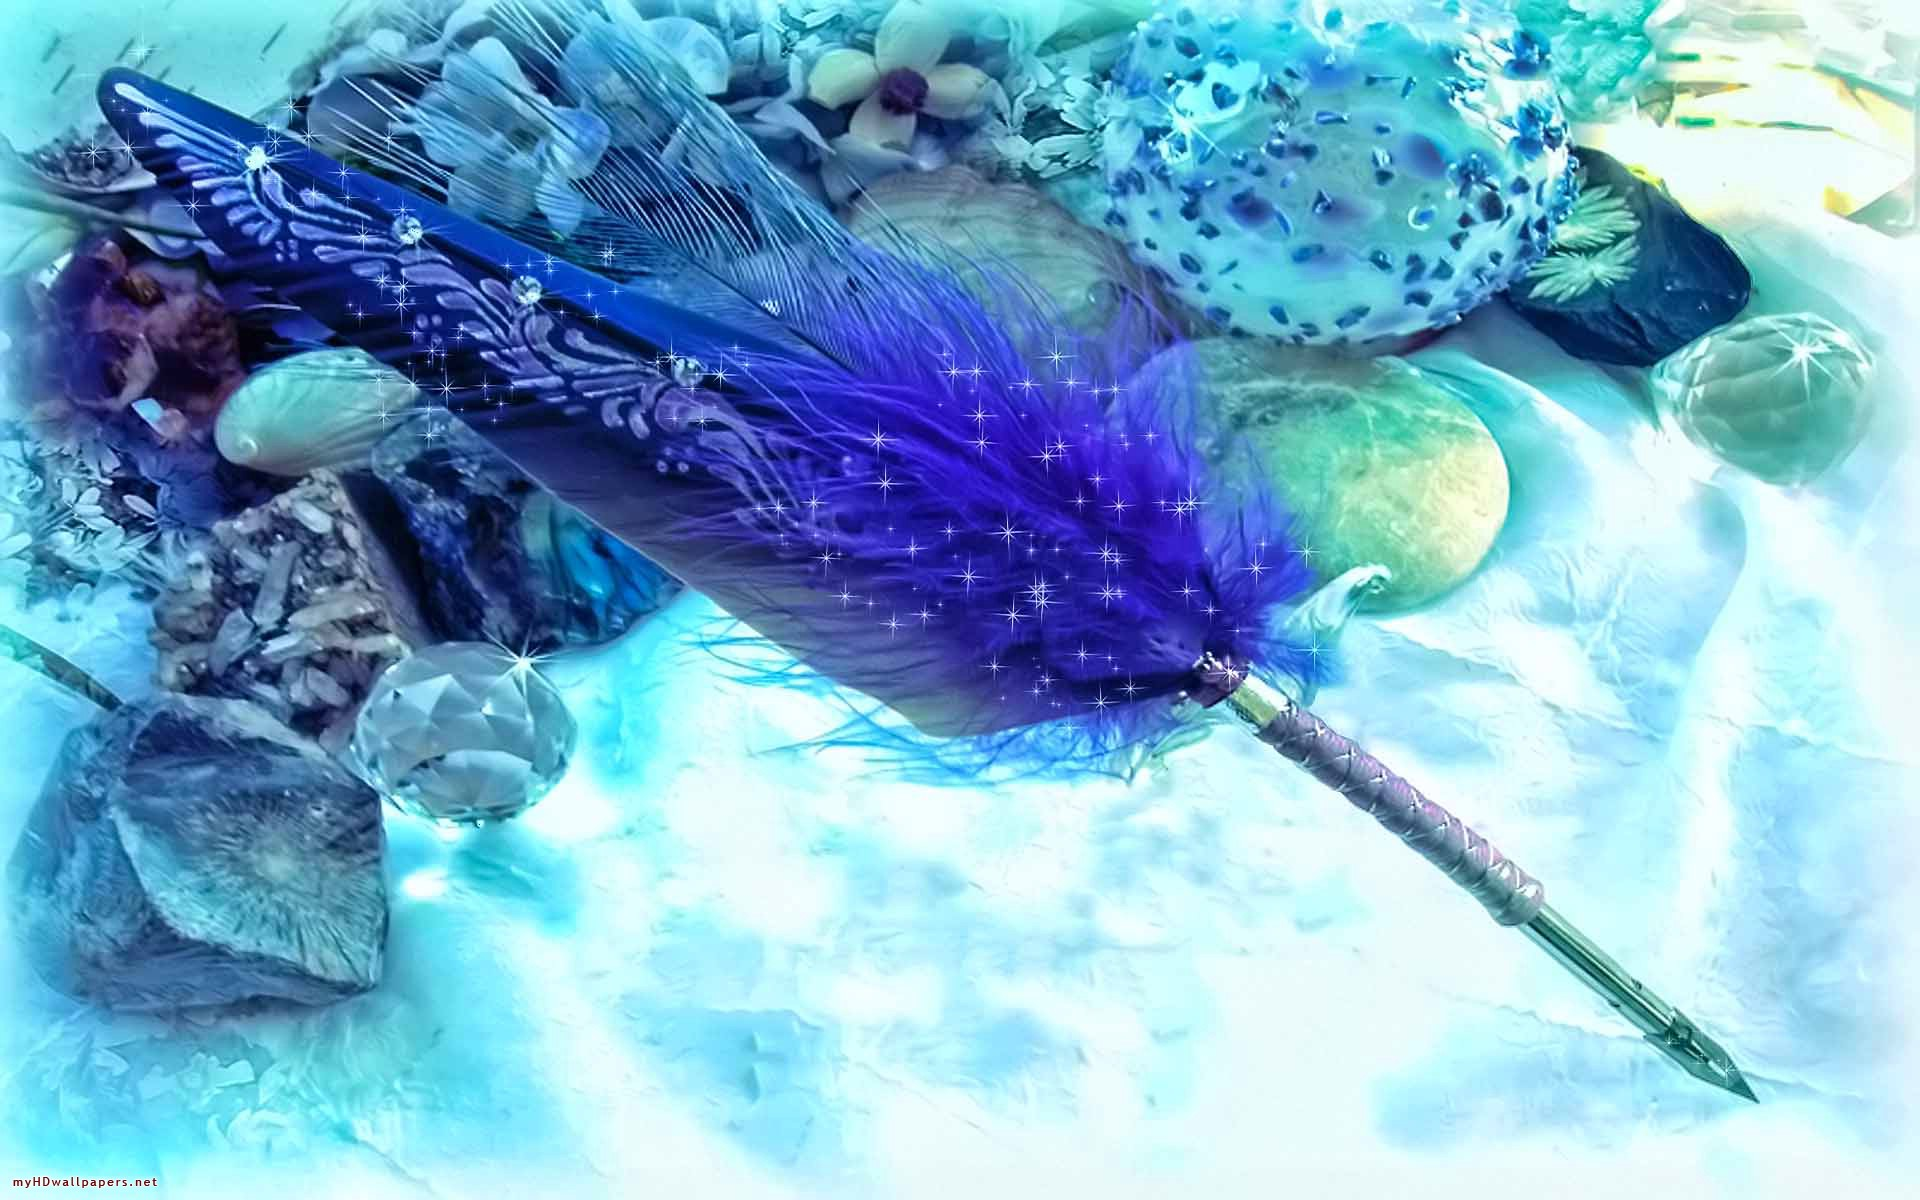 Peacock Feather Wallpaper For Desktop 697349 Hd